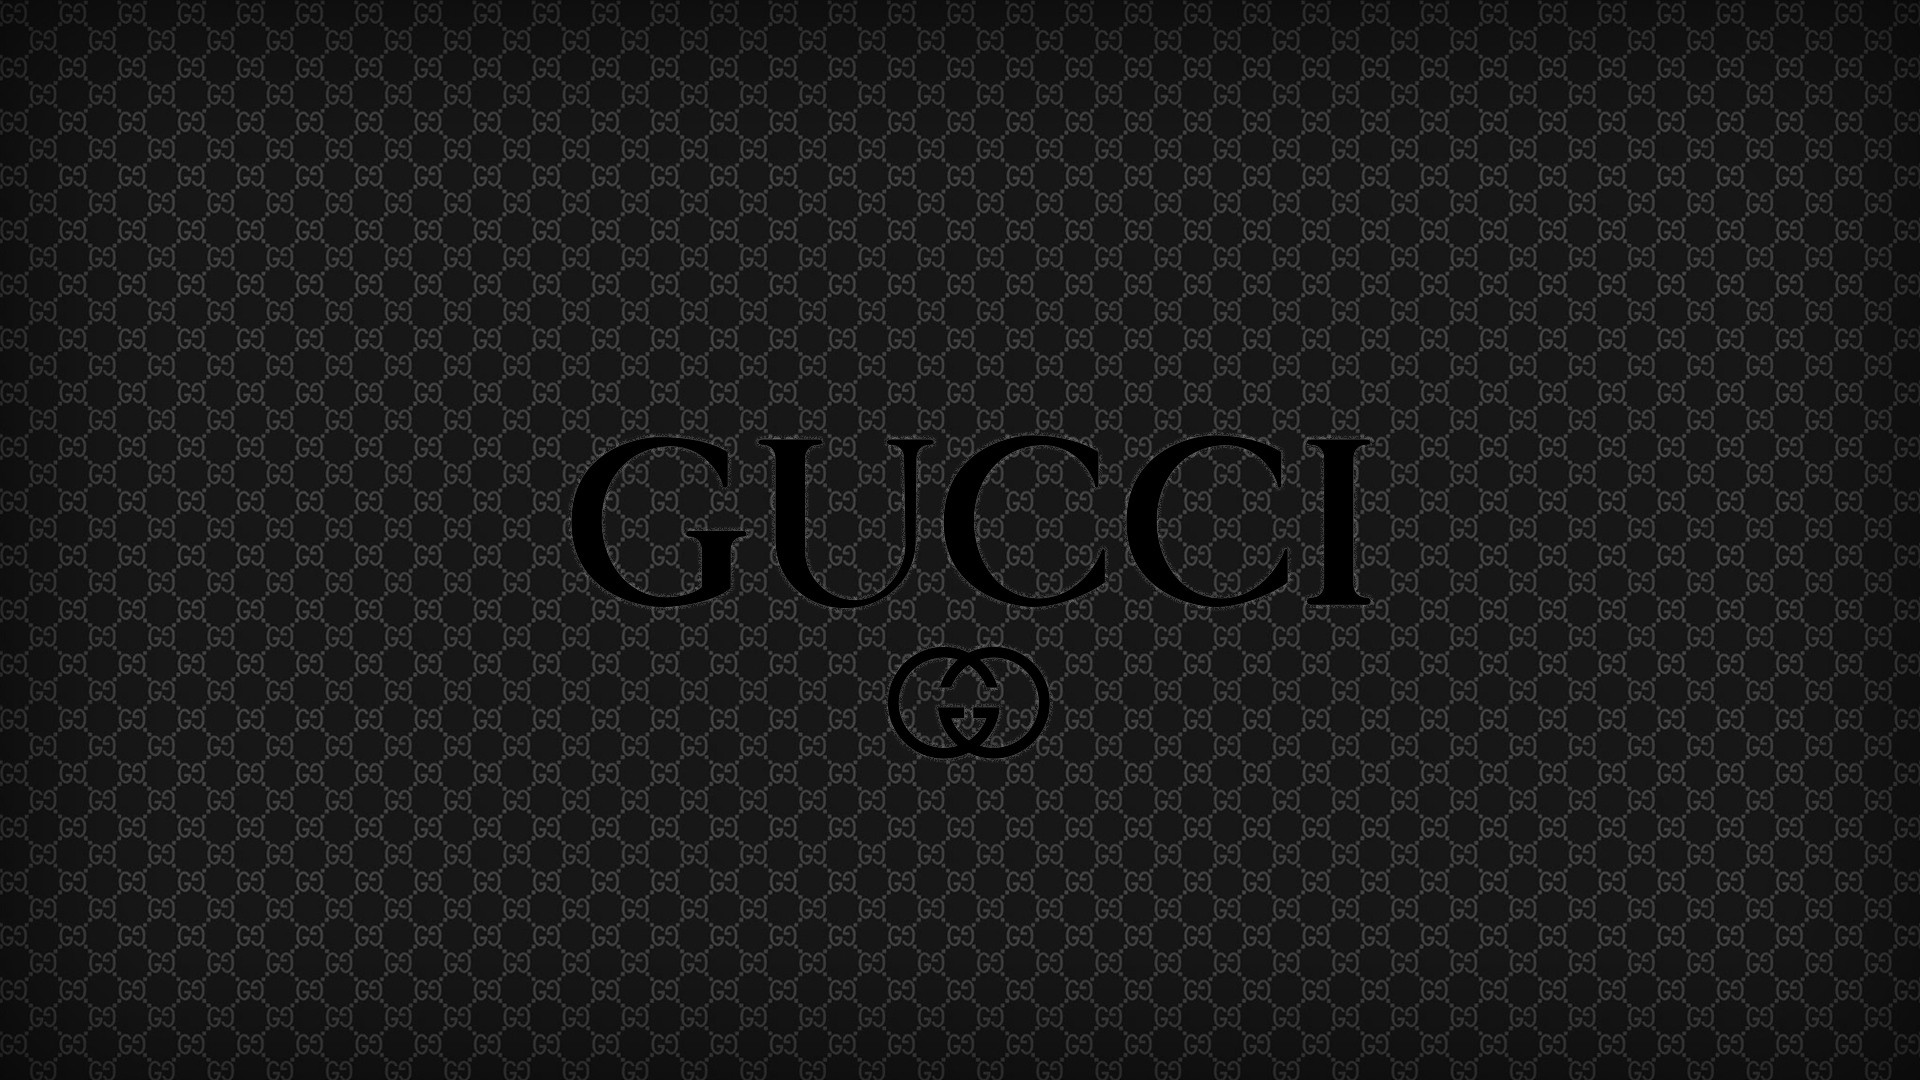 Download Wallpaper gucci, brand, logo Full HD 1080p HD Background